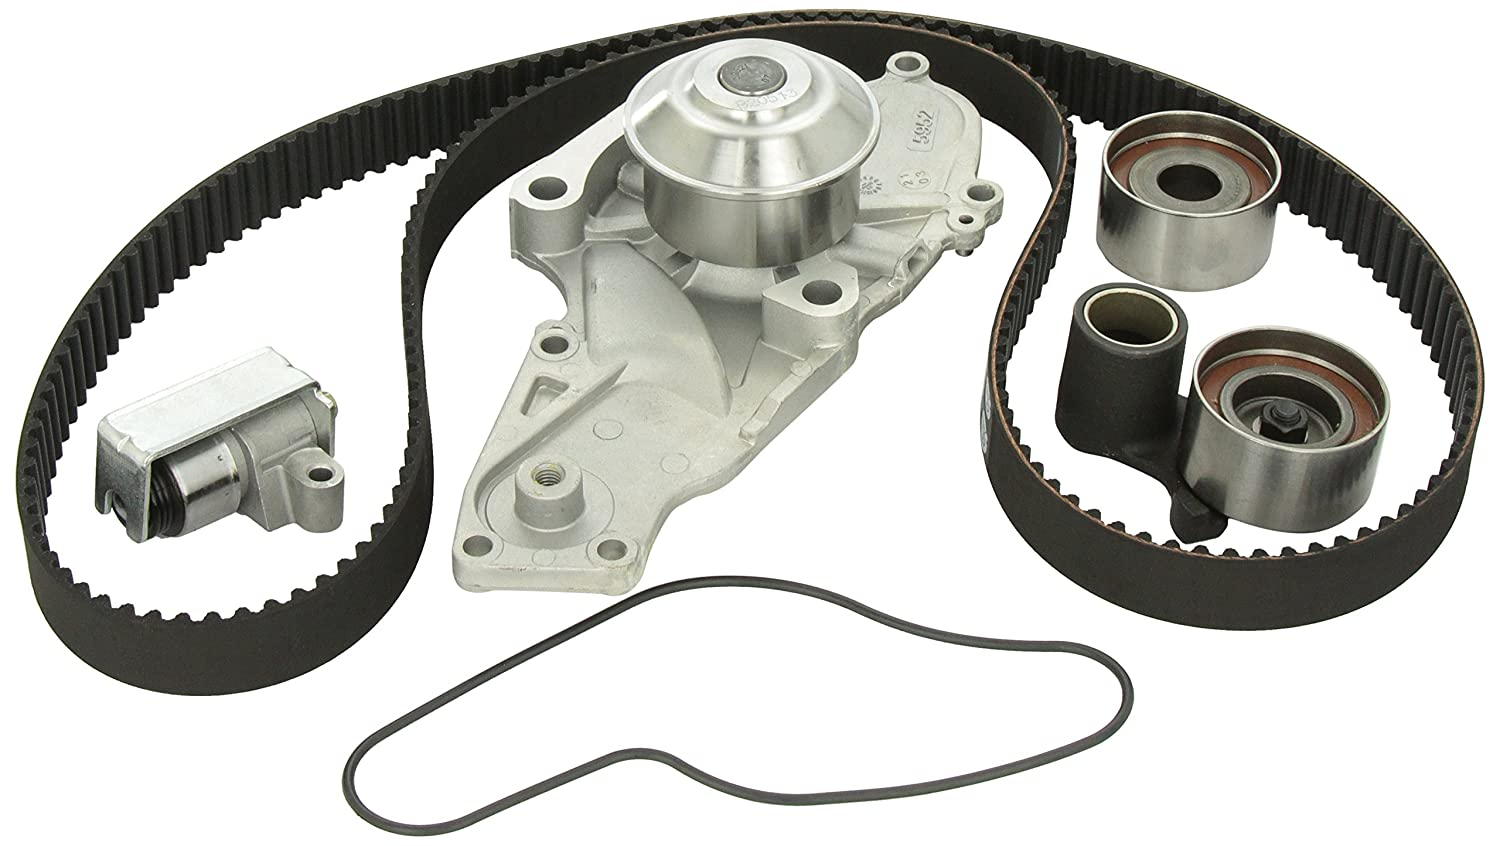 Gates Tckwp286a Engine Timing Belt Kit With Water Pump On All Engines Except Vtec The Adjuster Arm Must Be Locked In Automotive